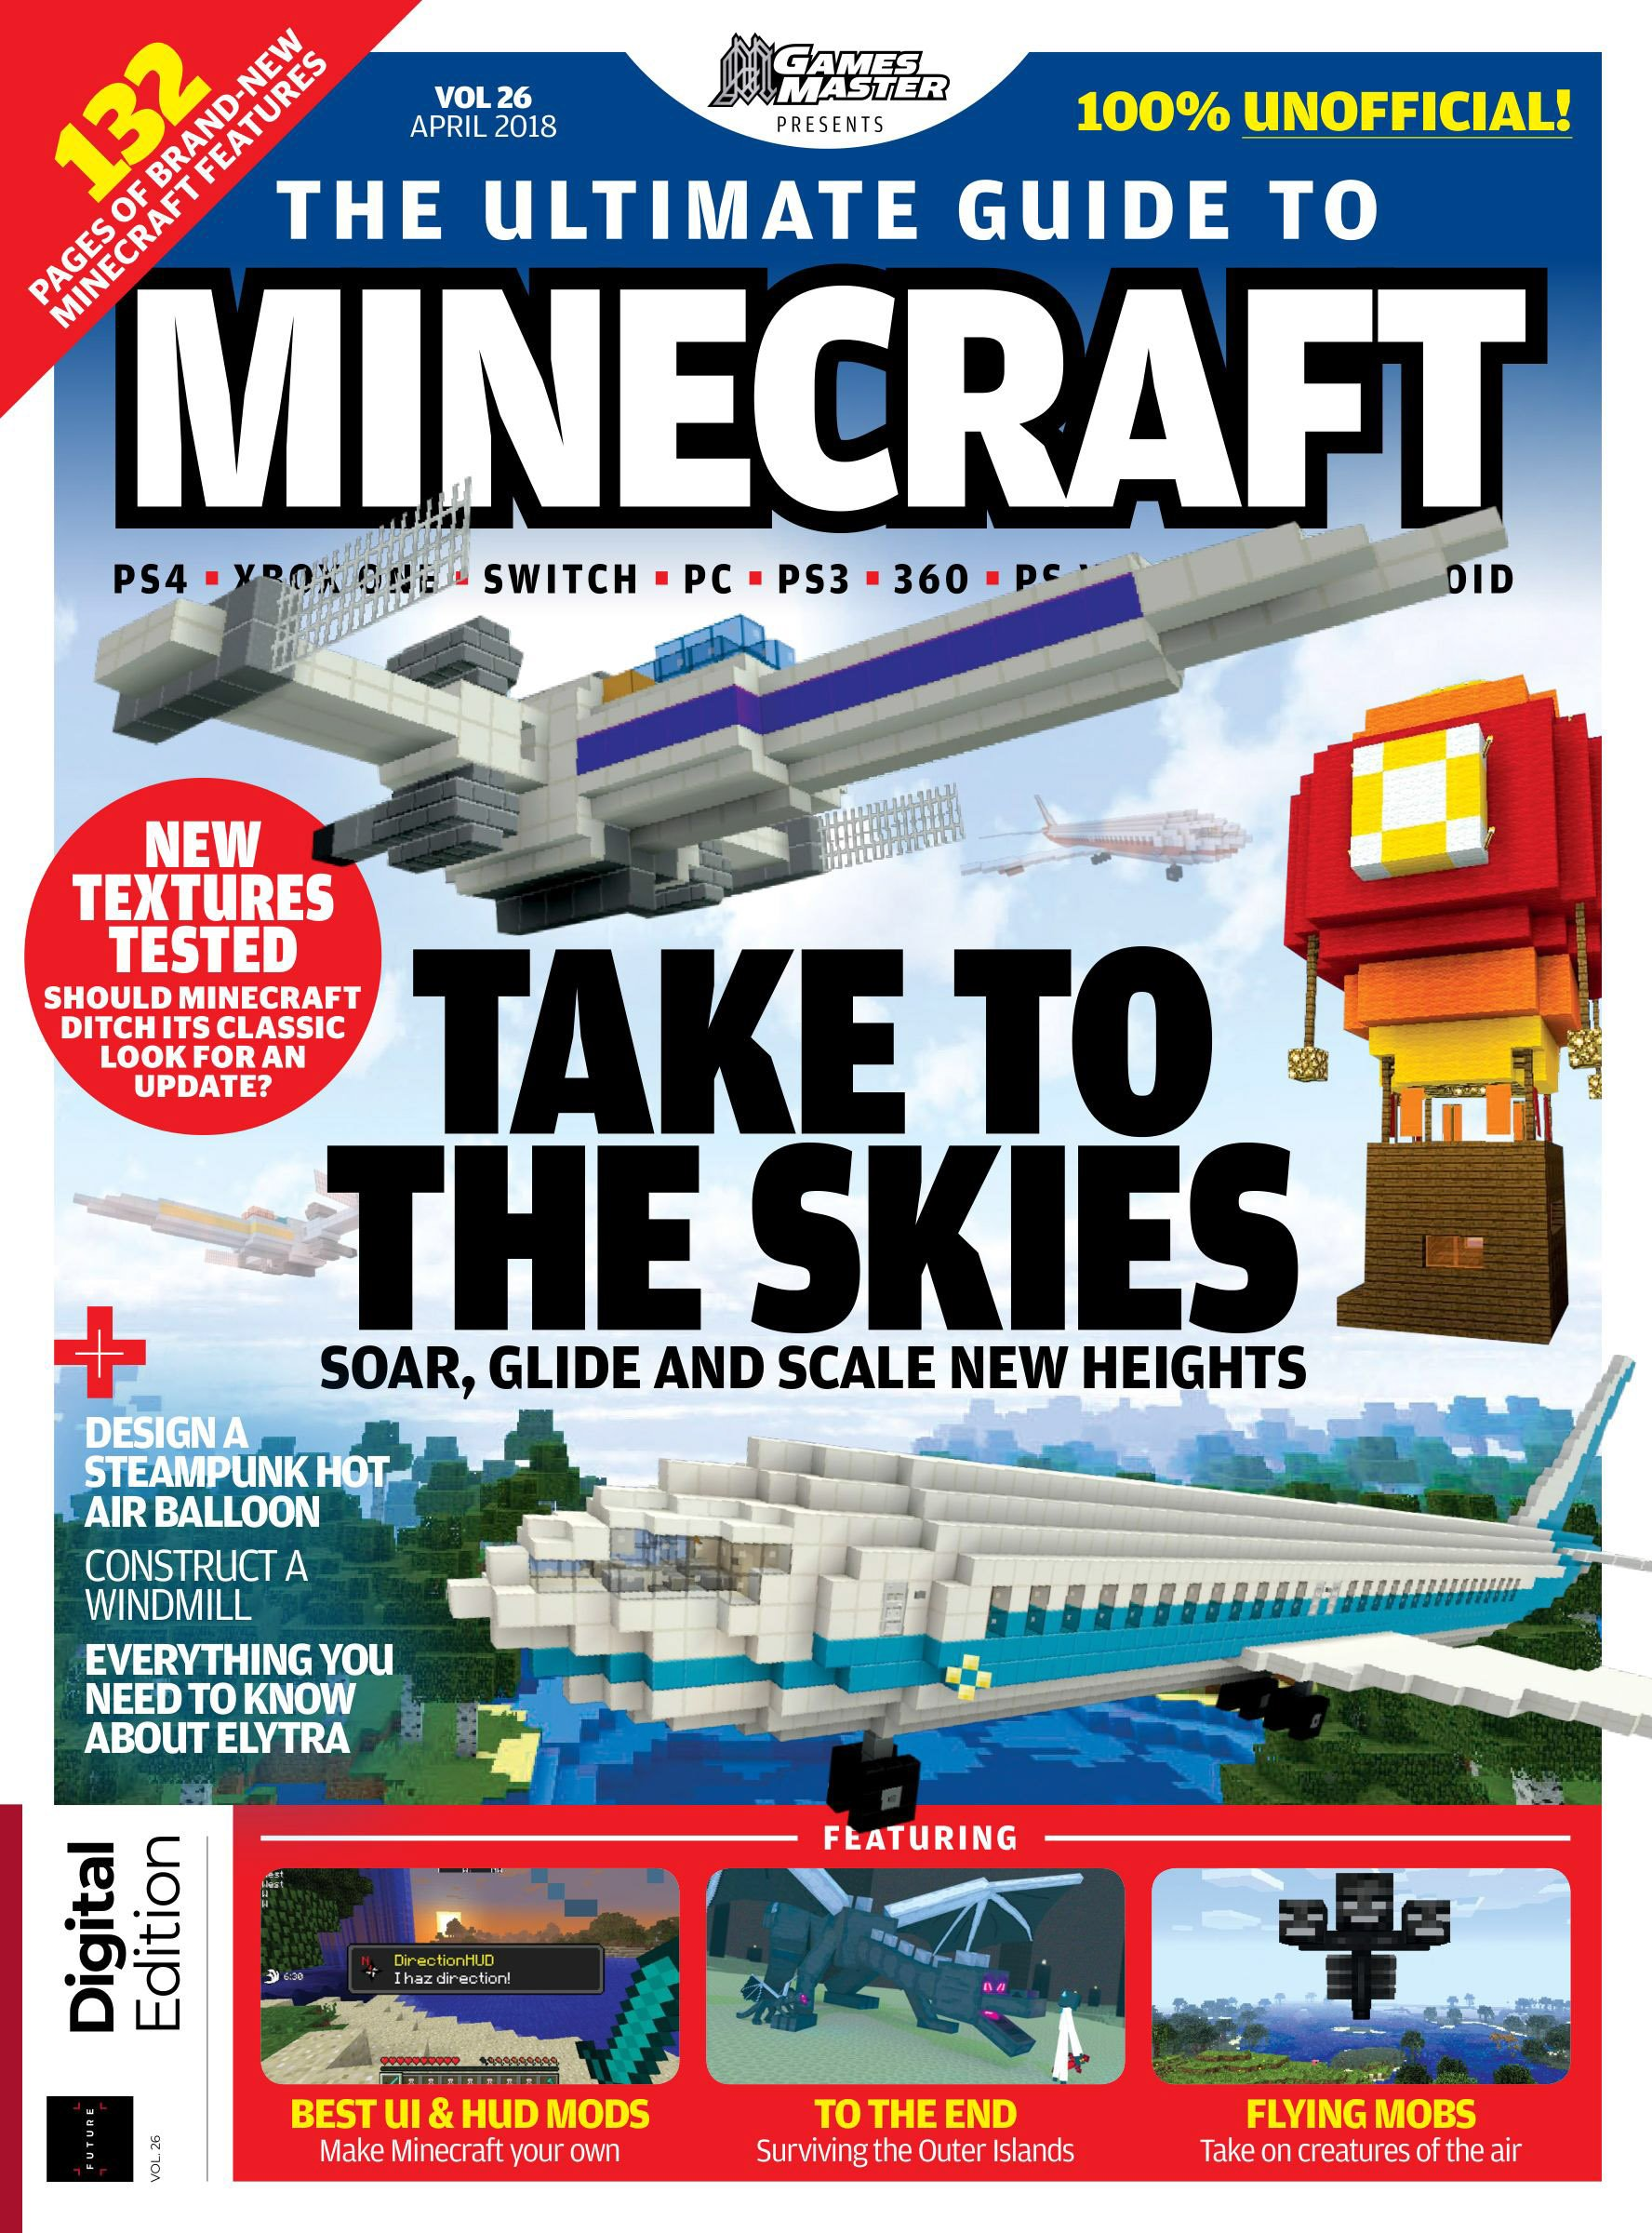 GamesMaster Presents: The Ultimate Guide to Minecraft Vol.26 (April 2018)